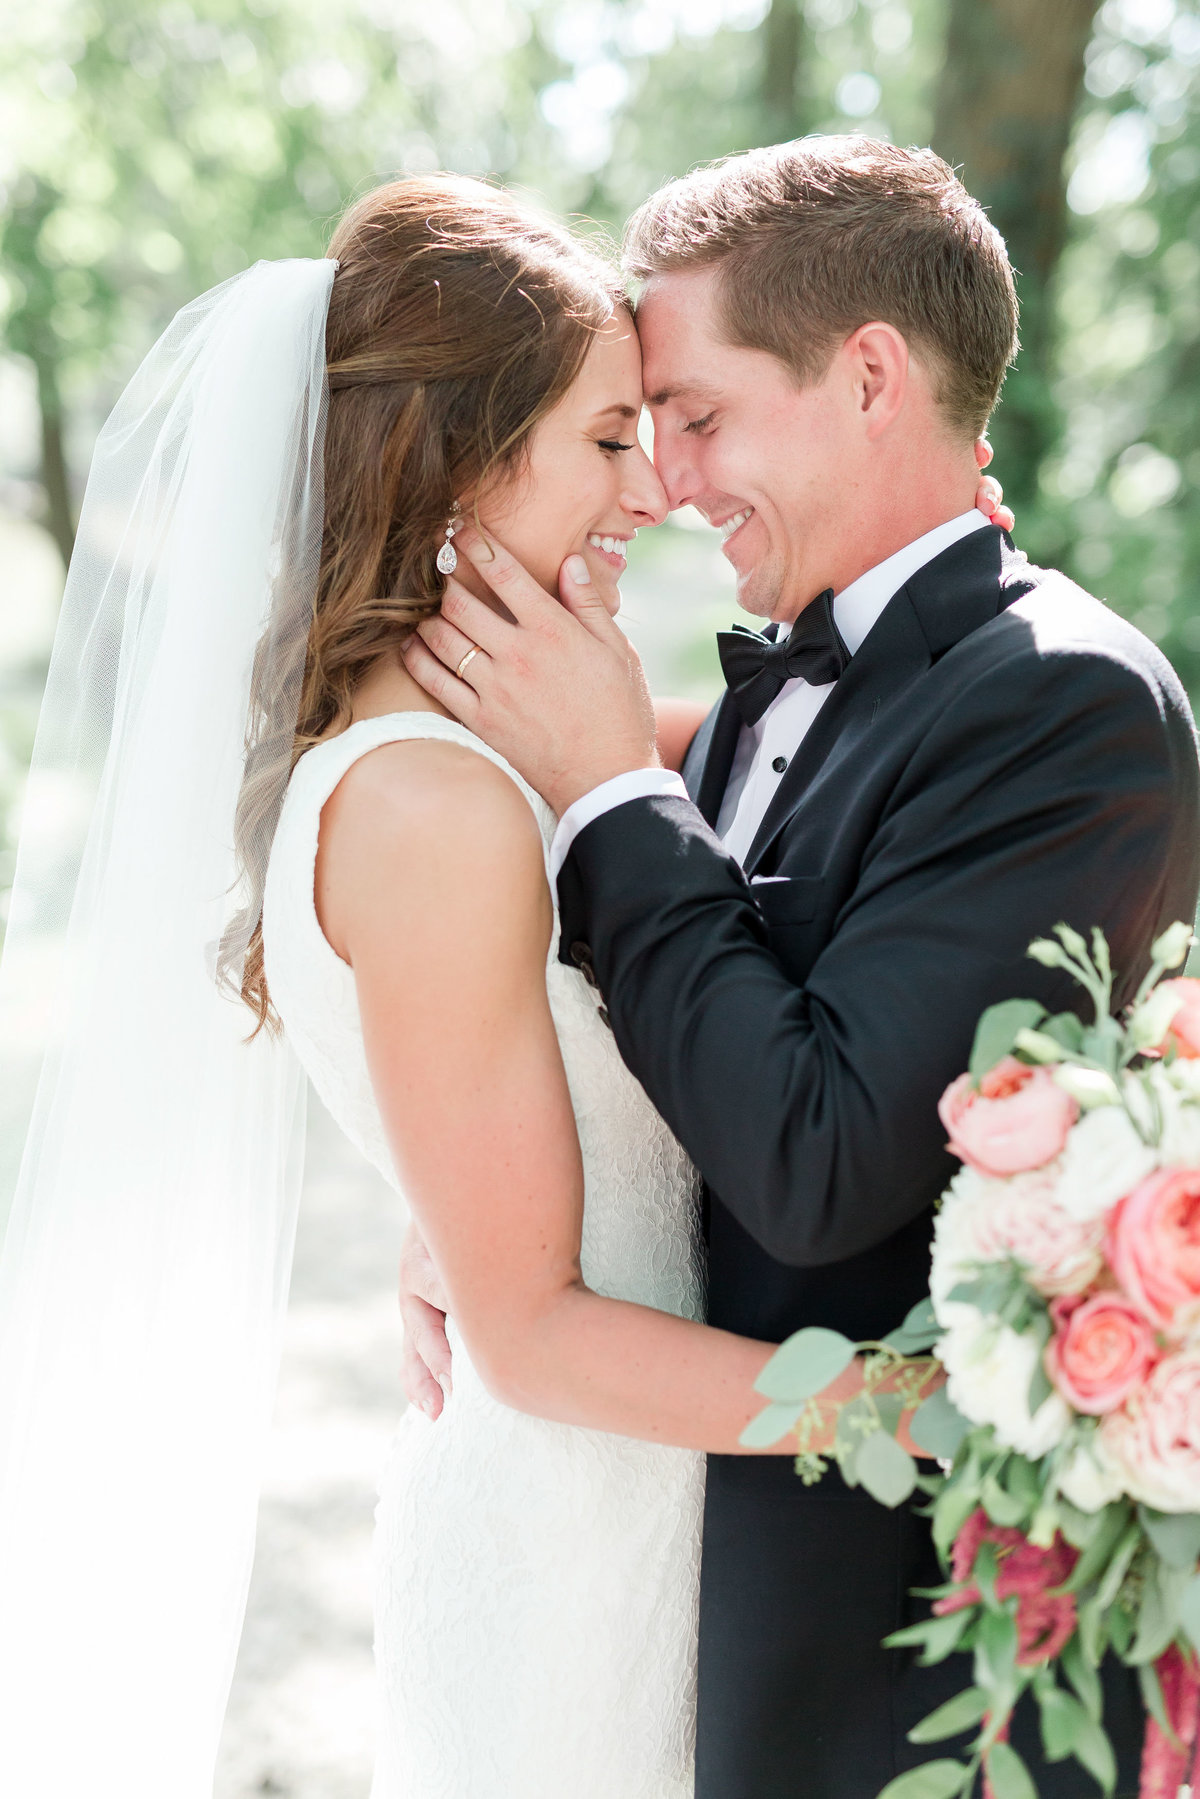 Maison Meredith Photography Wisconsin Wedding Photographer Real Wedding Four 070